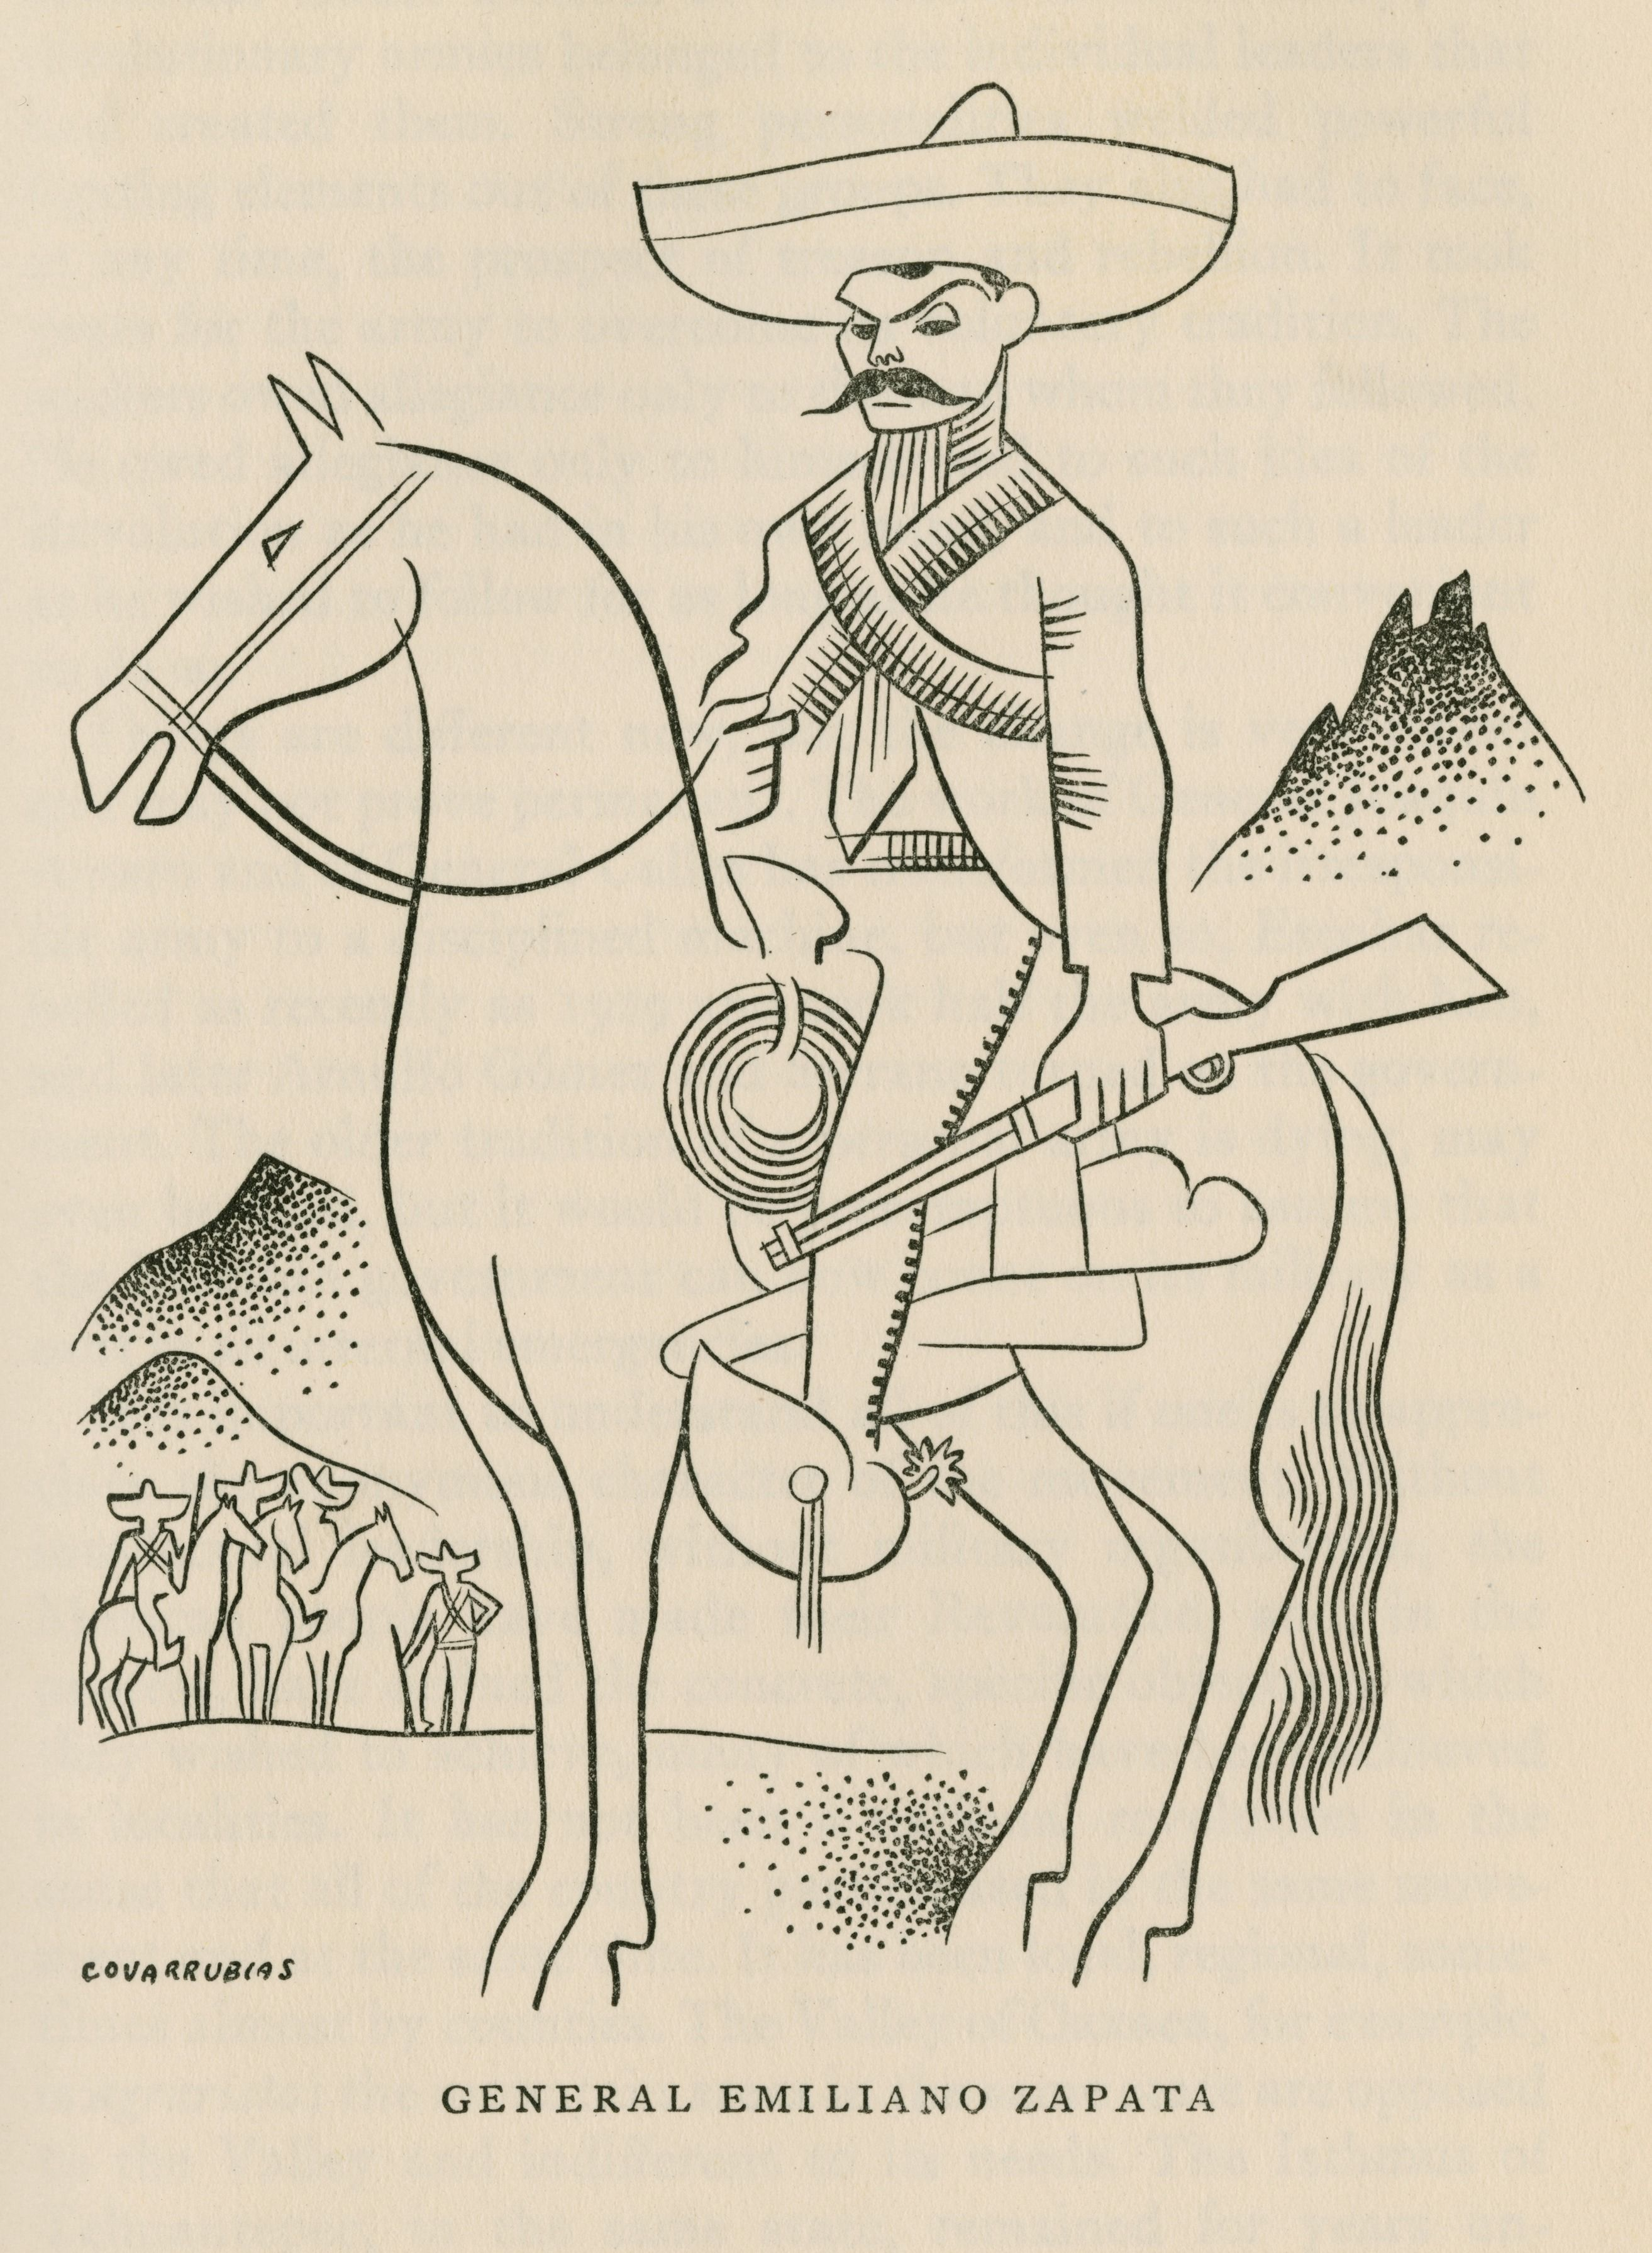 General Emiliano Zapata By Miguel Covarrubias Mexican Revolution Animated Drawings Illustrations Posters